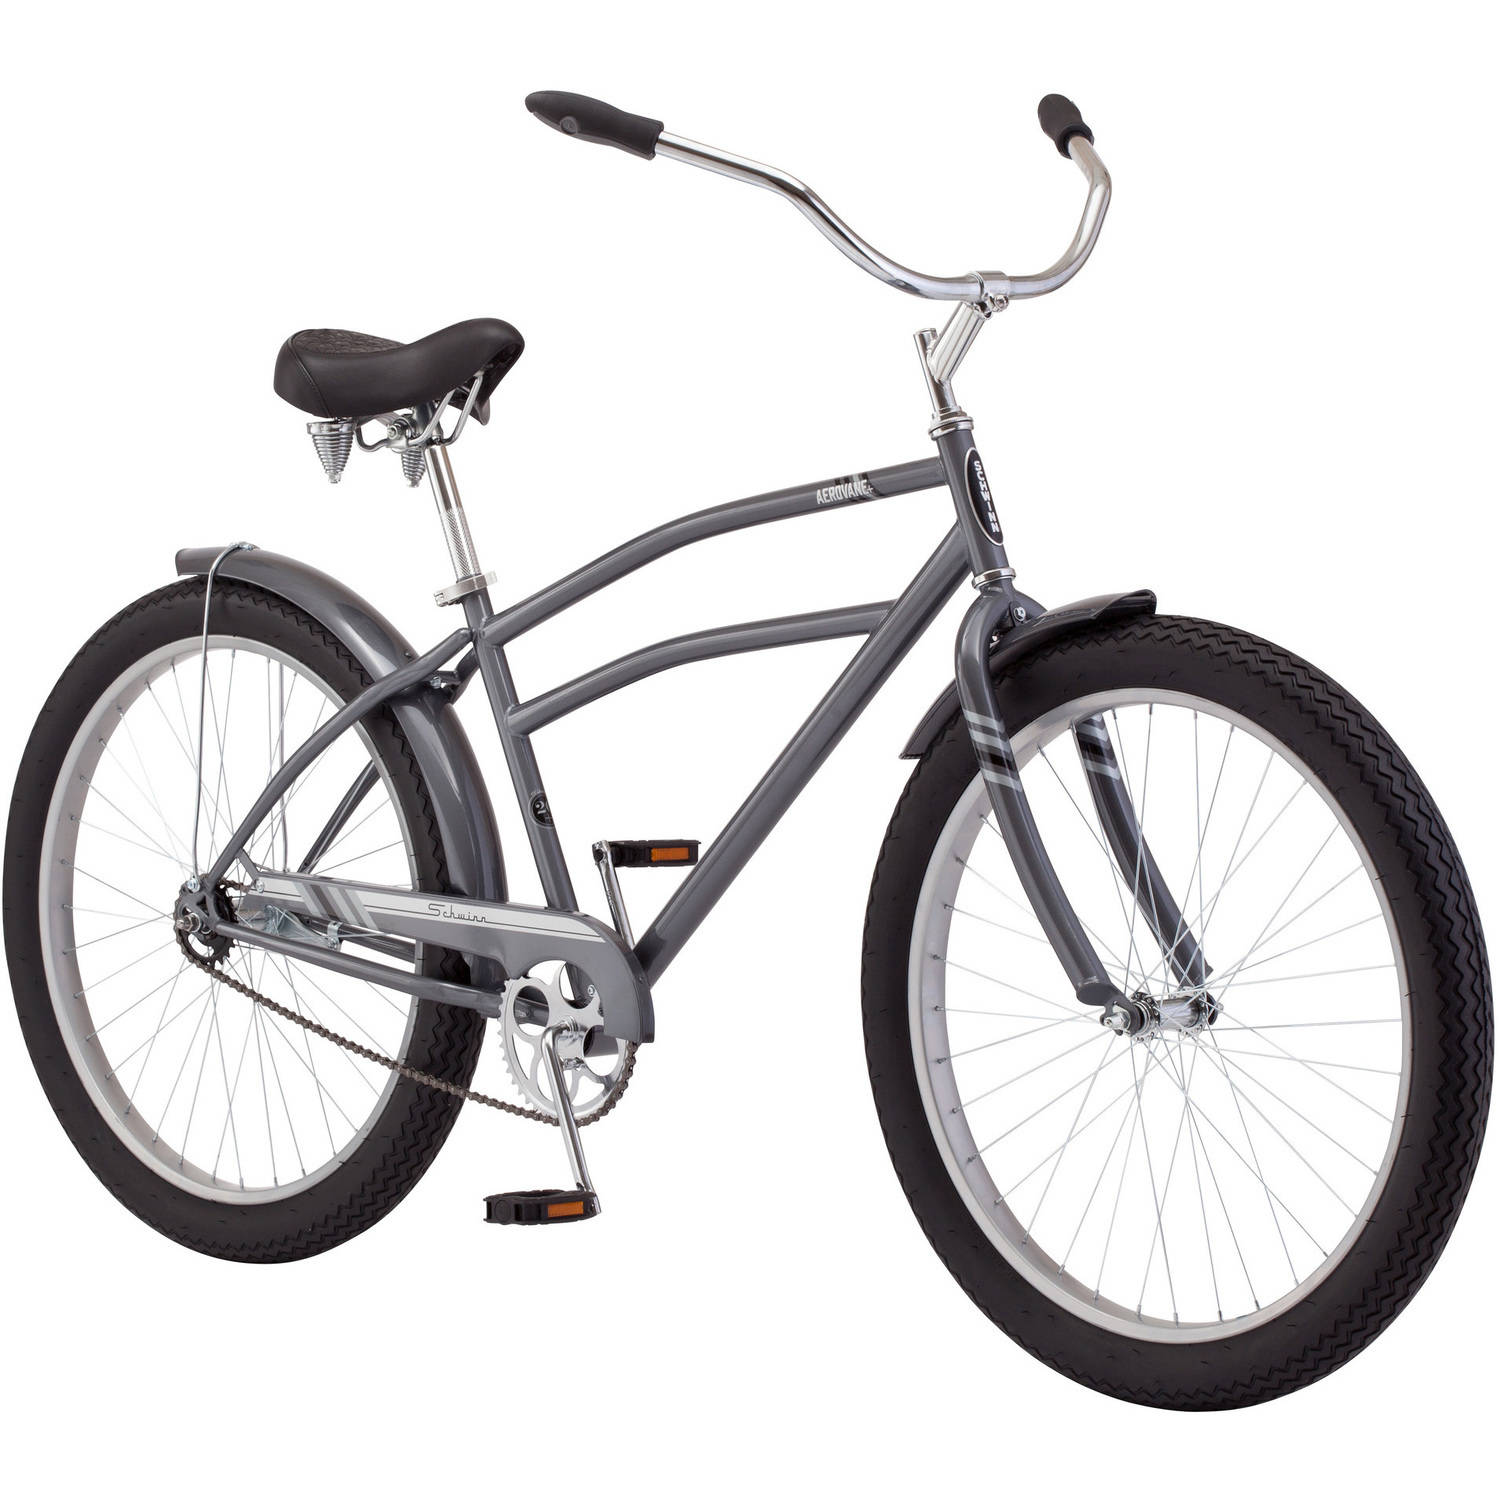 "26.5""+ Schwinn Aerovane Men's Cruiser Bike"